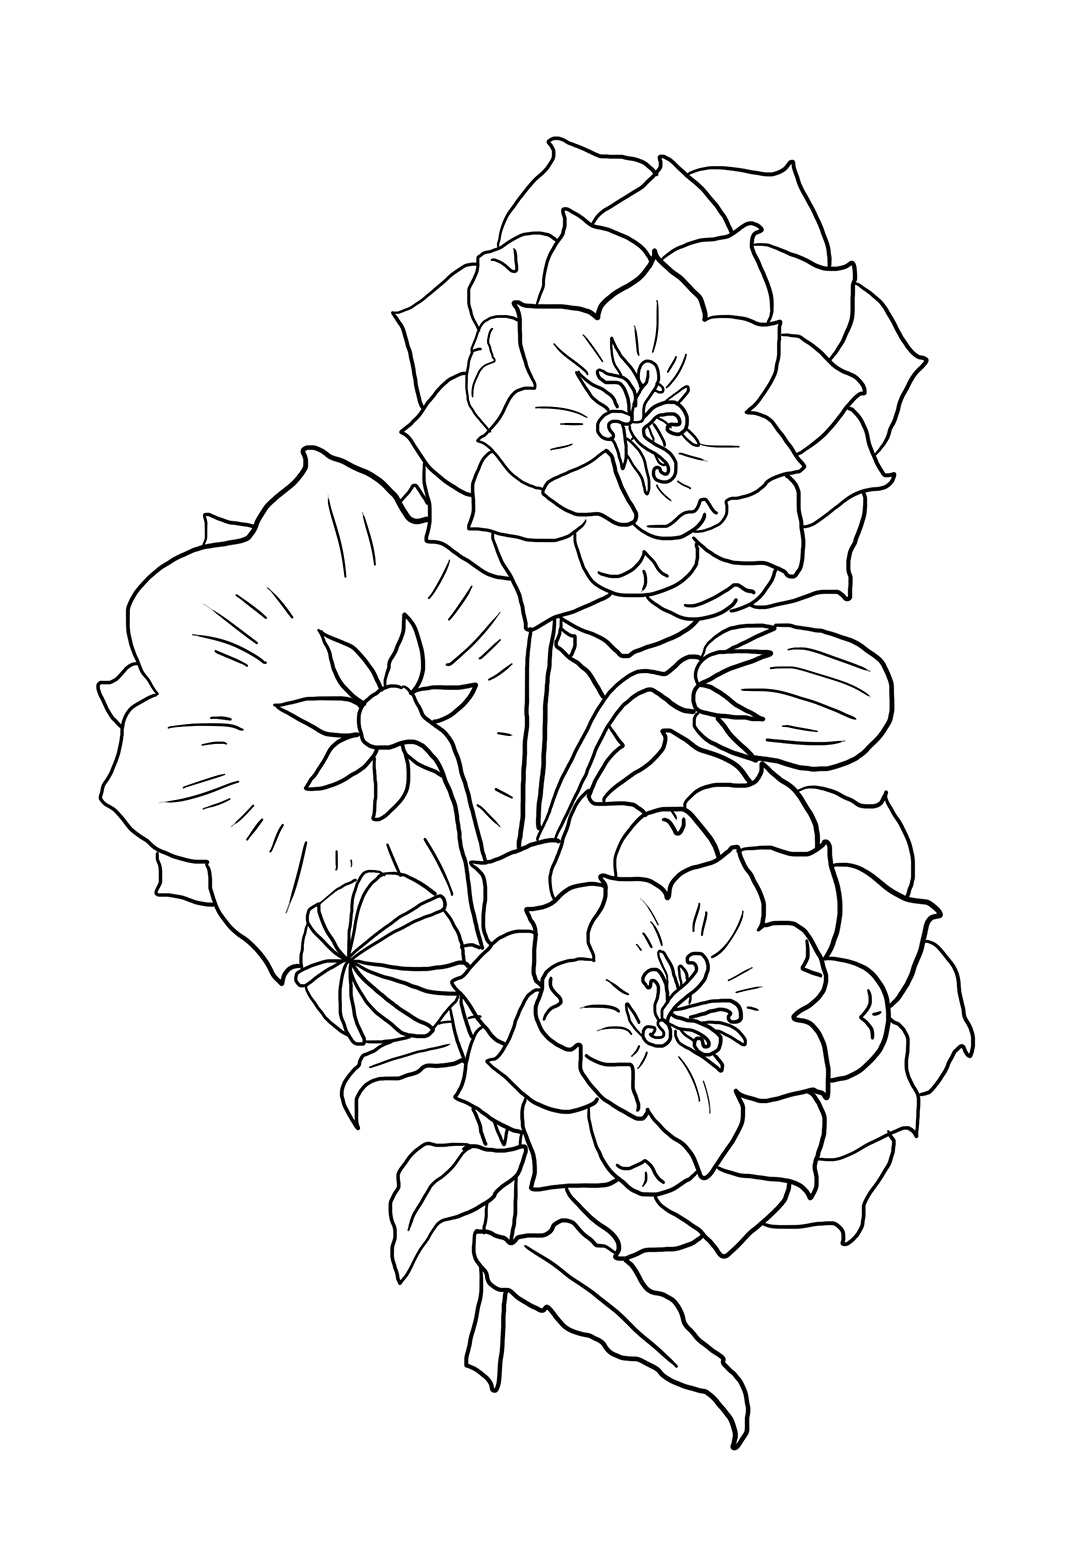 printable flowers coloring pages beautiful printable flowers coloring pages printable coloring pages flowers